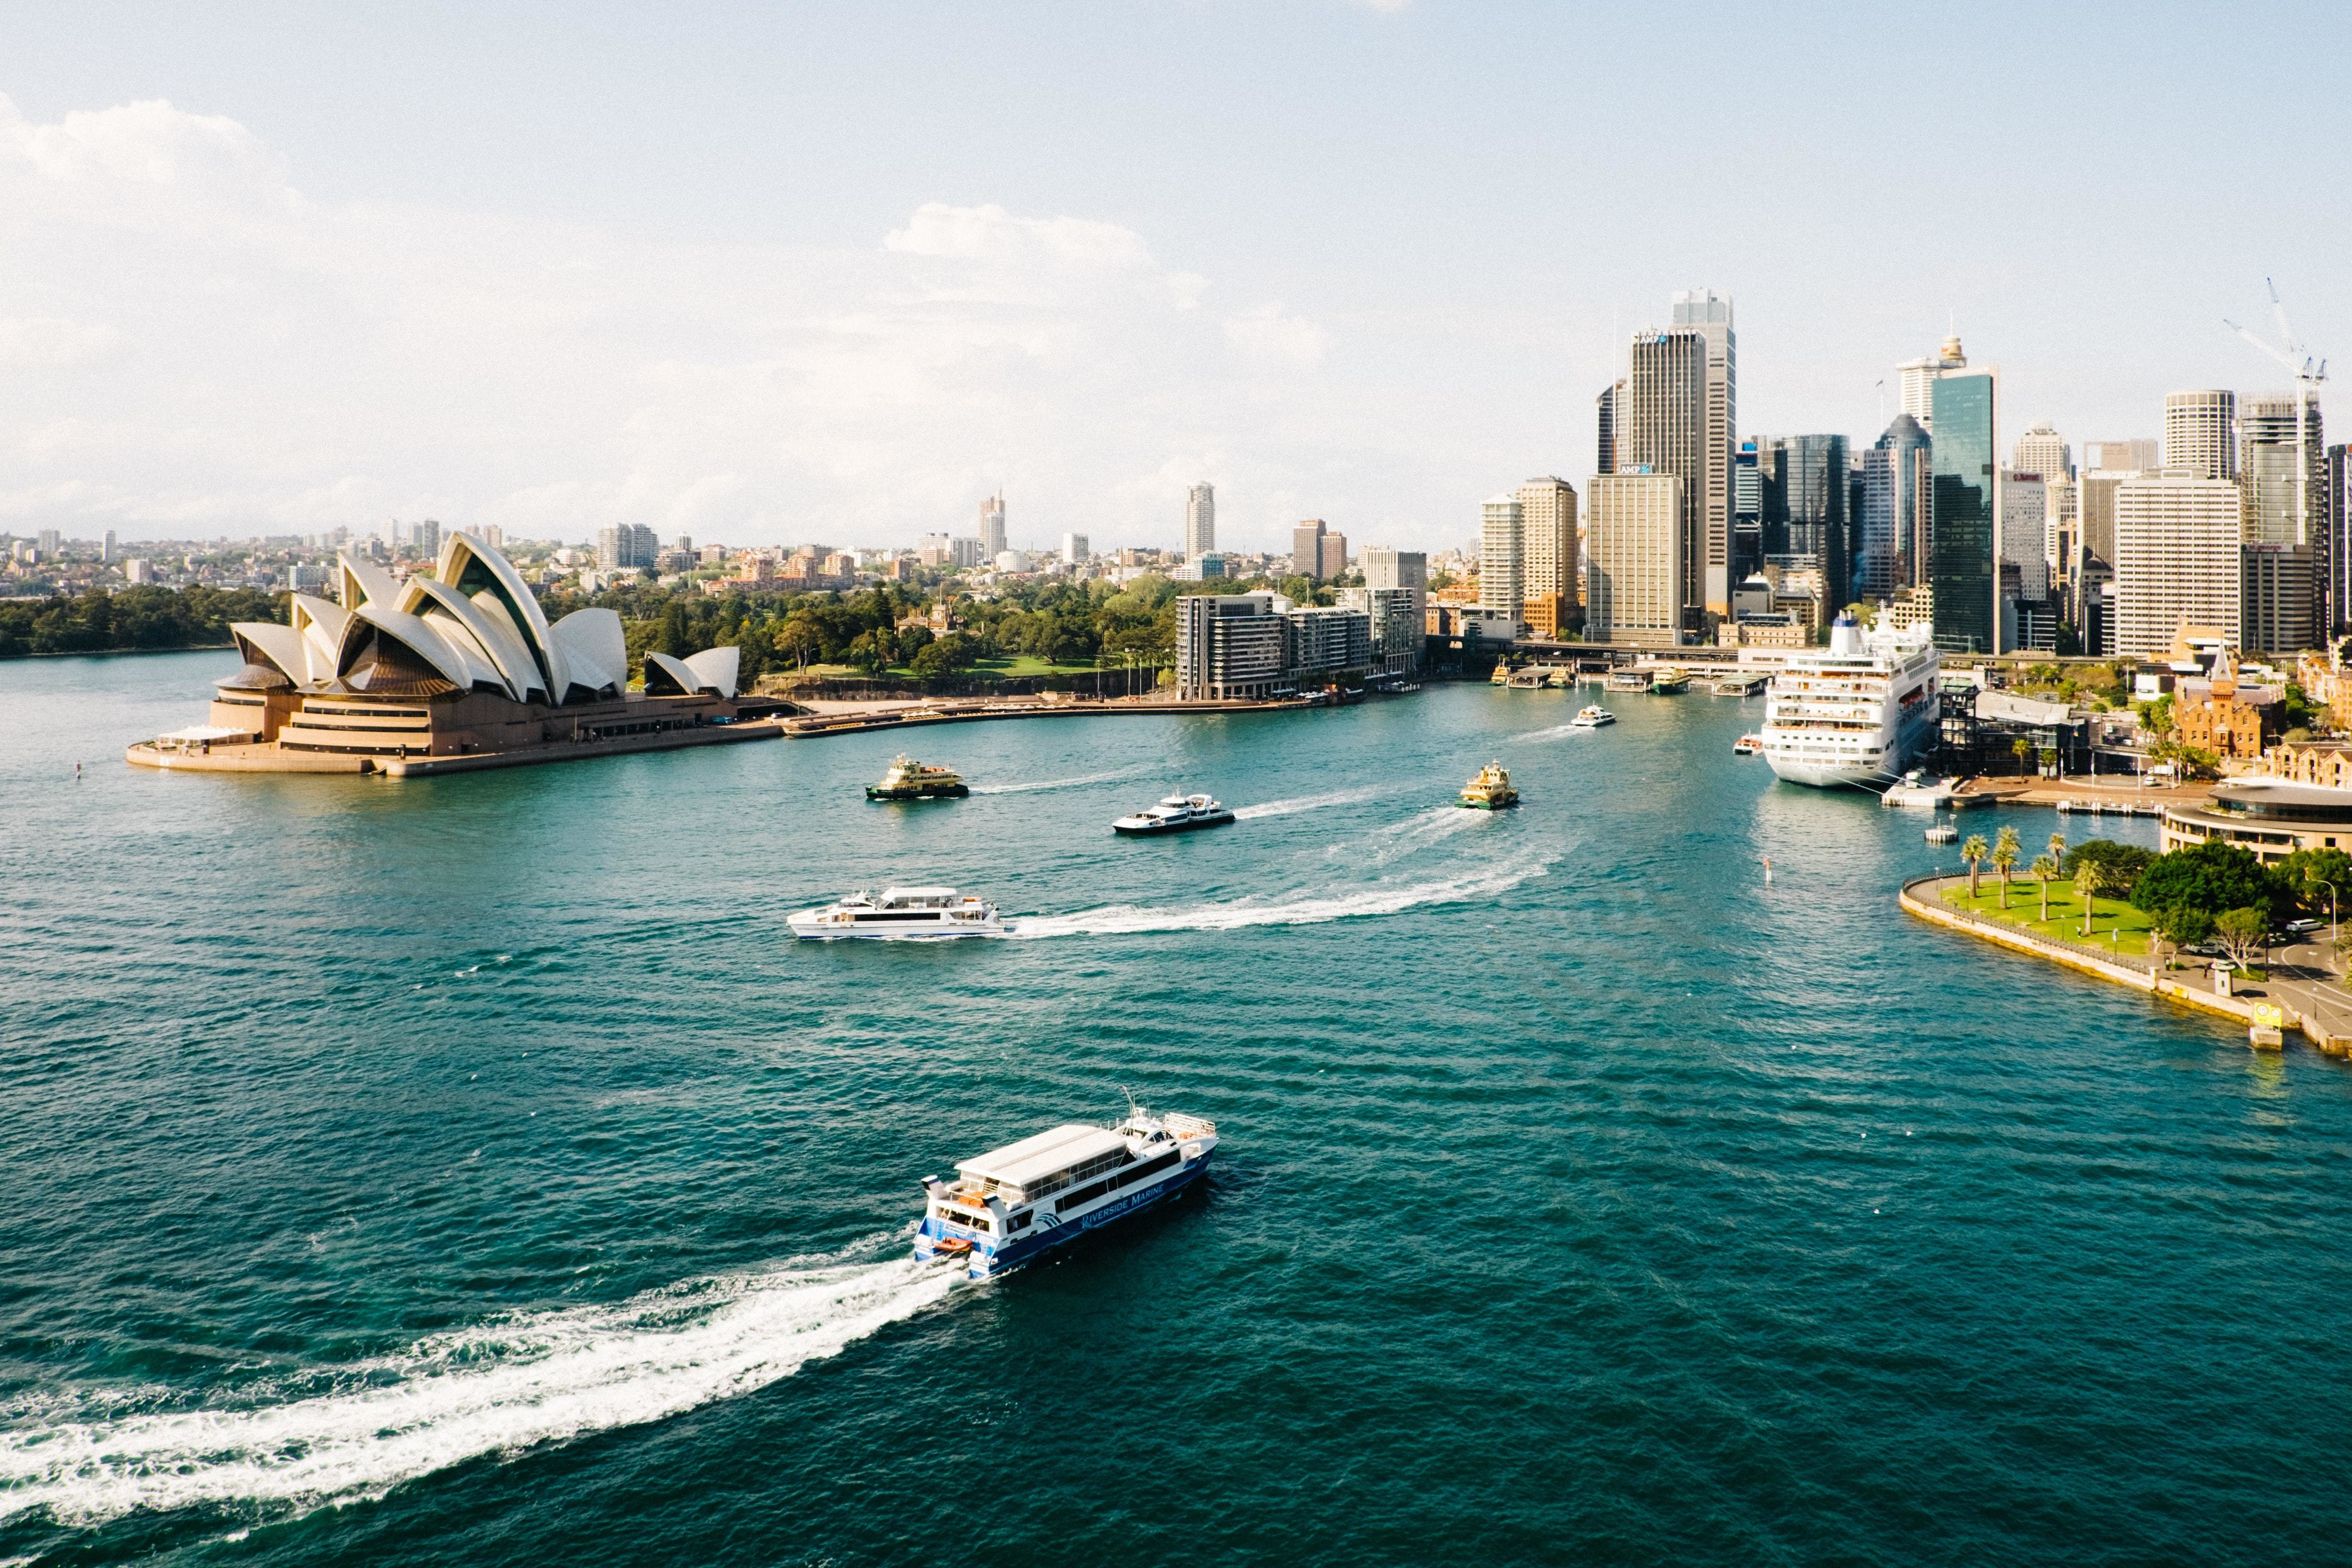 pictured is Sydney, Australia. The Western side of the city has faced intense heatwaves which ended in February